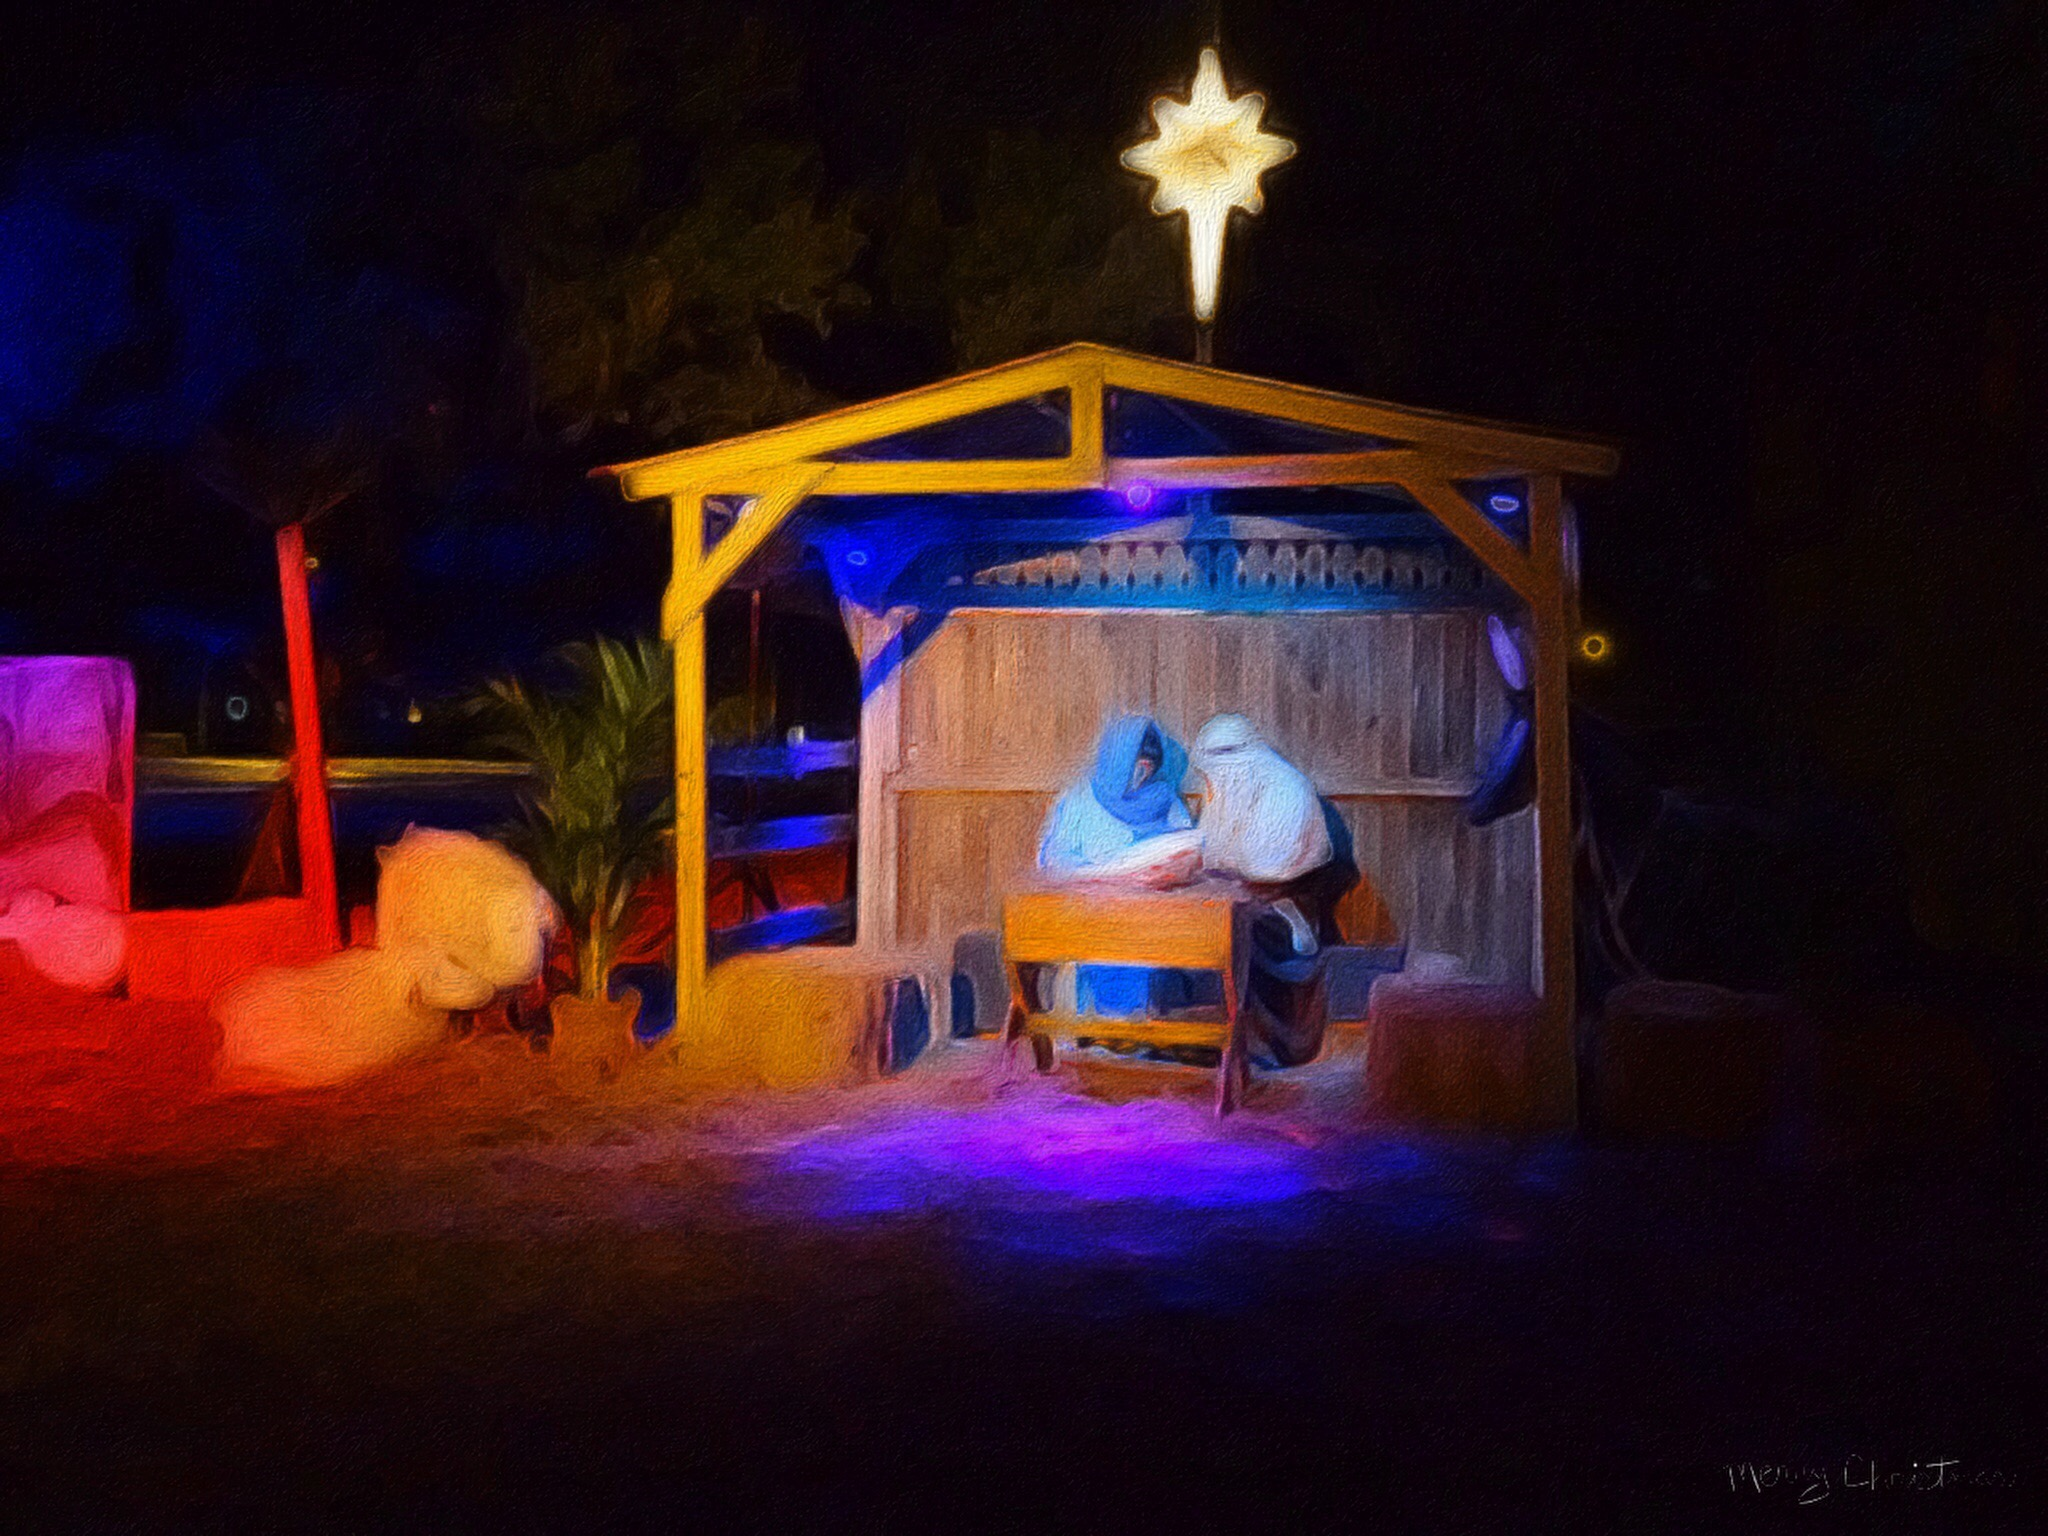 Photography by Debra Smelik Walling Scene from a Live Nativity at St. Pete Community Church